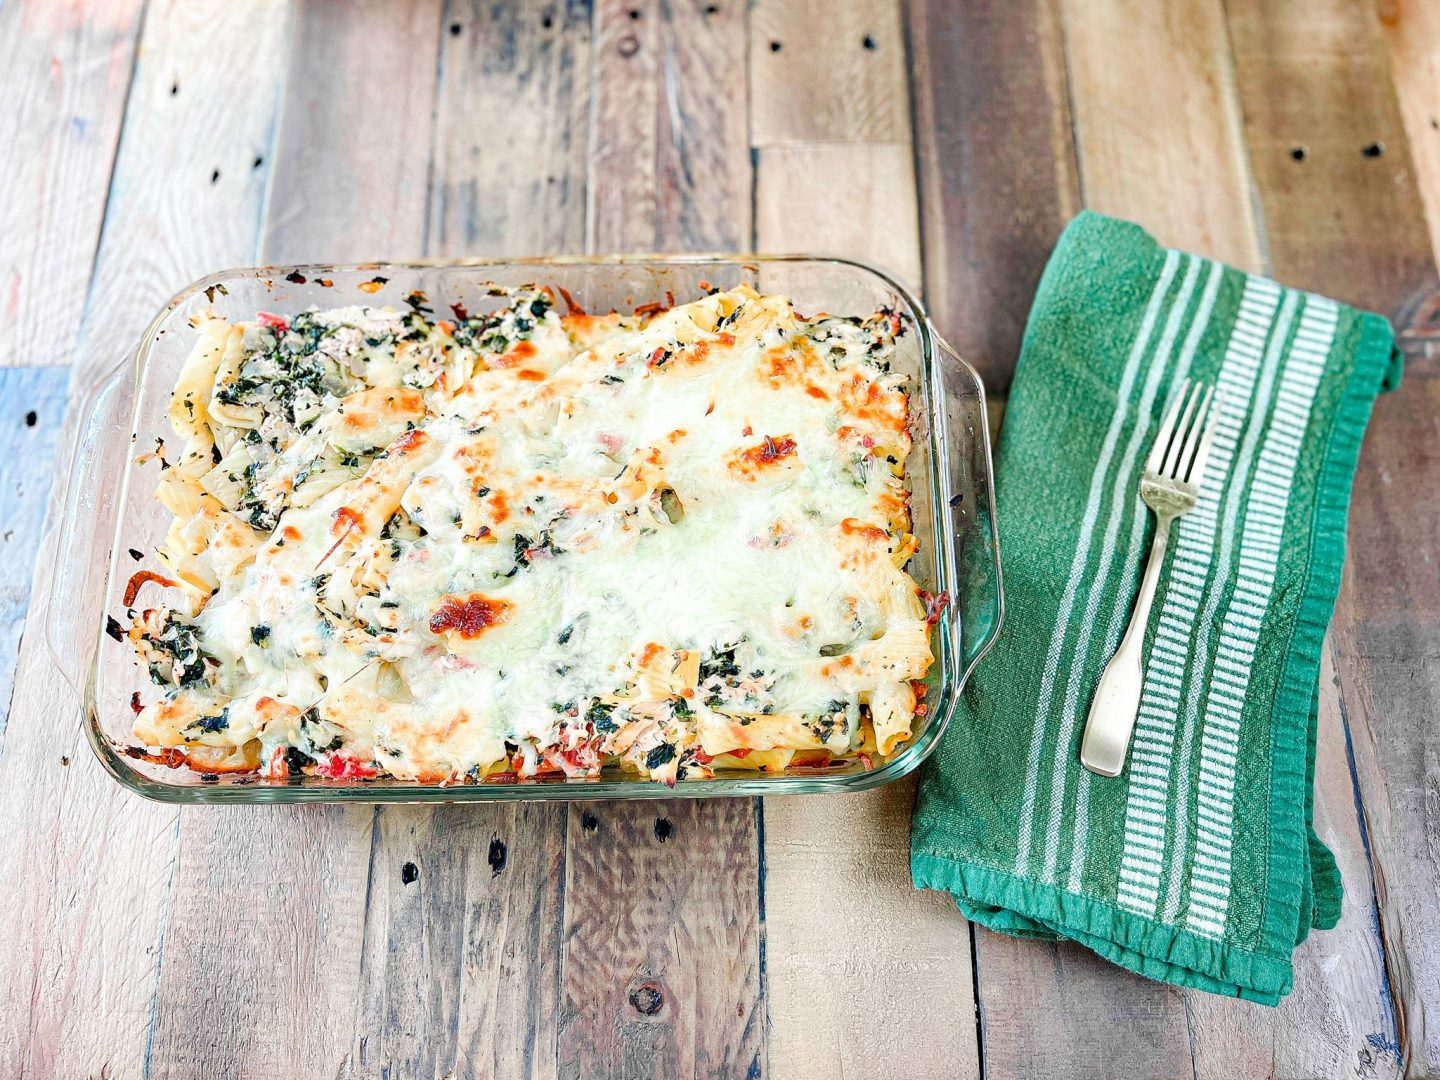 Delicious Spinach & Chicken Pasta Bake by Alabama Food + Healthy Living blogger, Heather Brown // My Life Well Loved